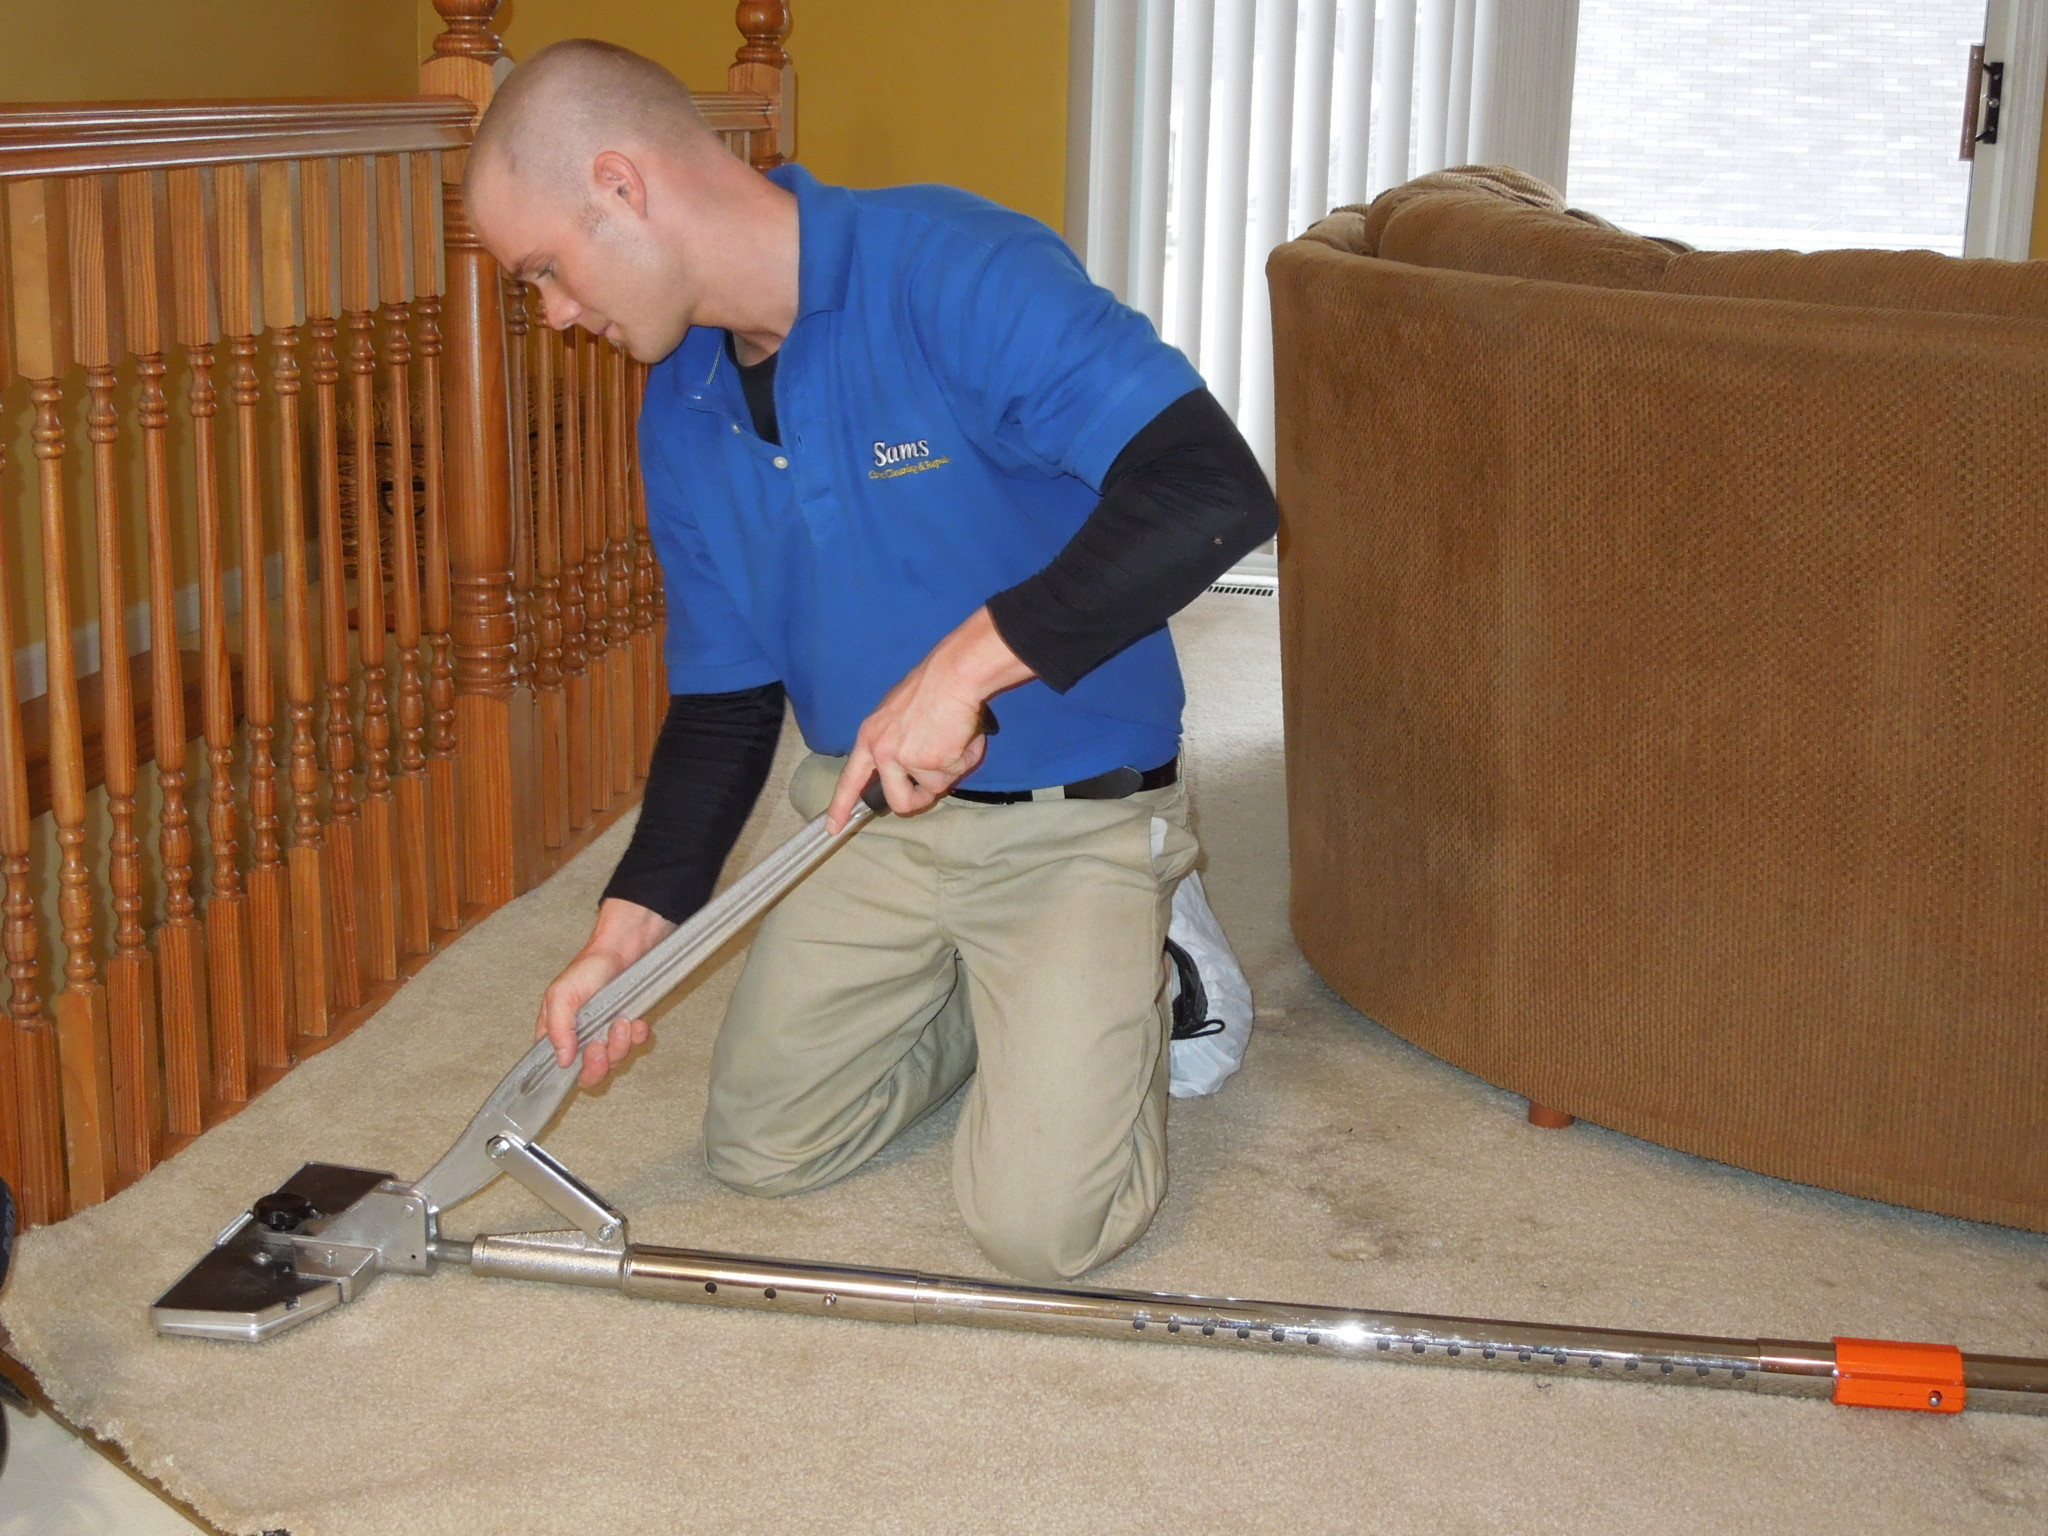 Carpet Cleaning St Charles Mo How I Shave My Legs